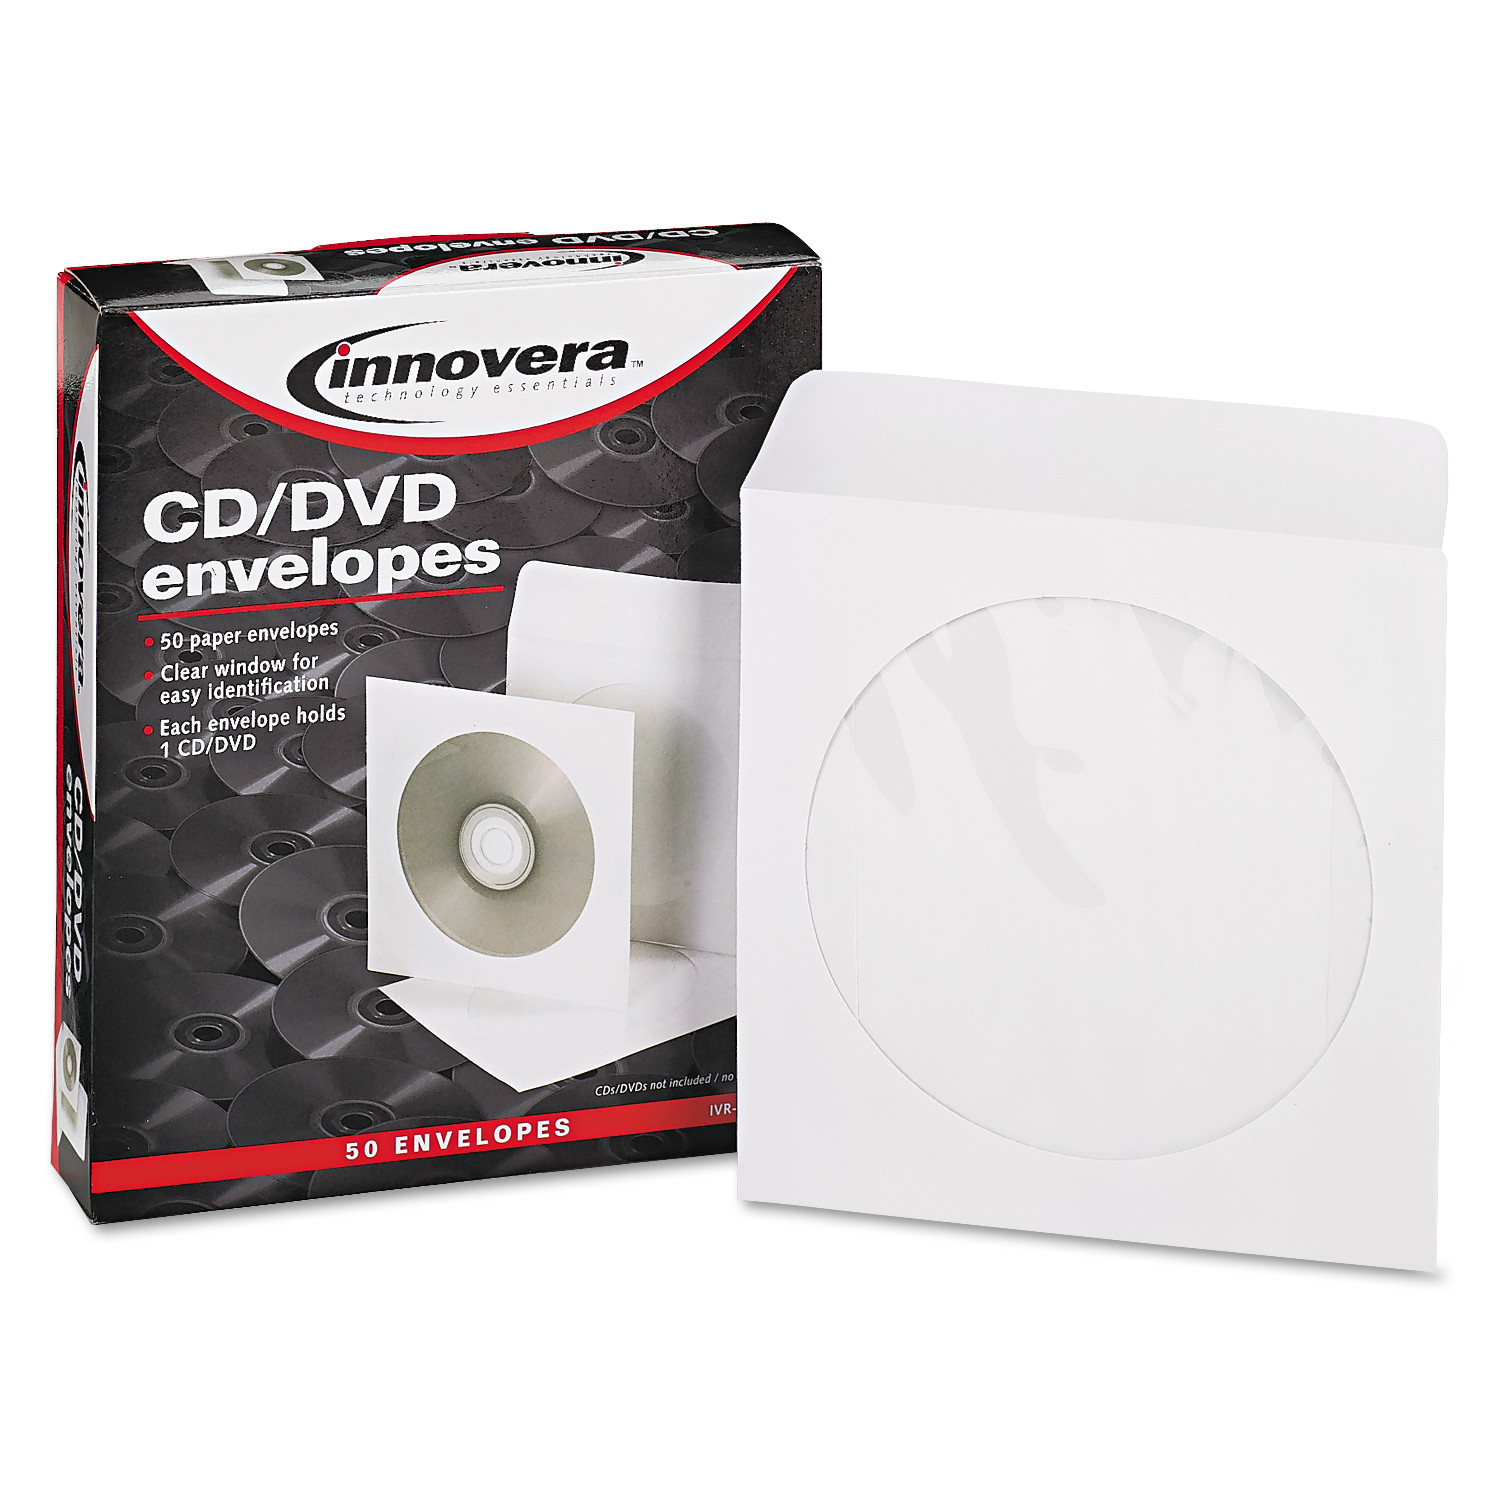 Innovera CD/DVD Envelopes, Clear Window, White, 50/Pack